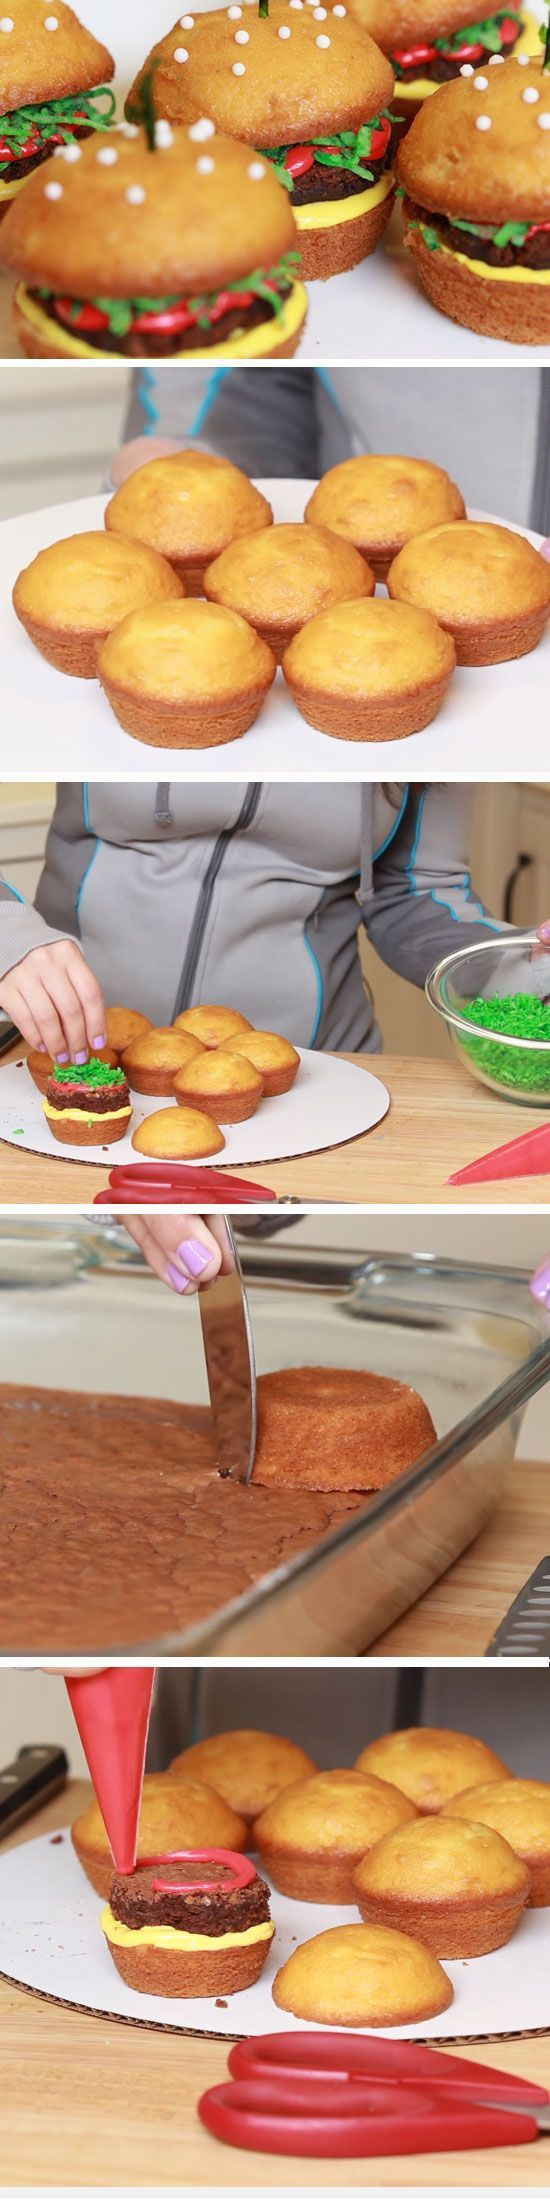 Cheeseburger Cupcakes | DIY Fathers Day Cupcakes Ideas for Kids to Make | DIY Birthday Gifts for Dad from Kids